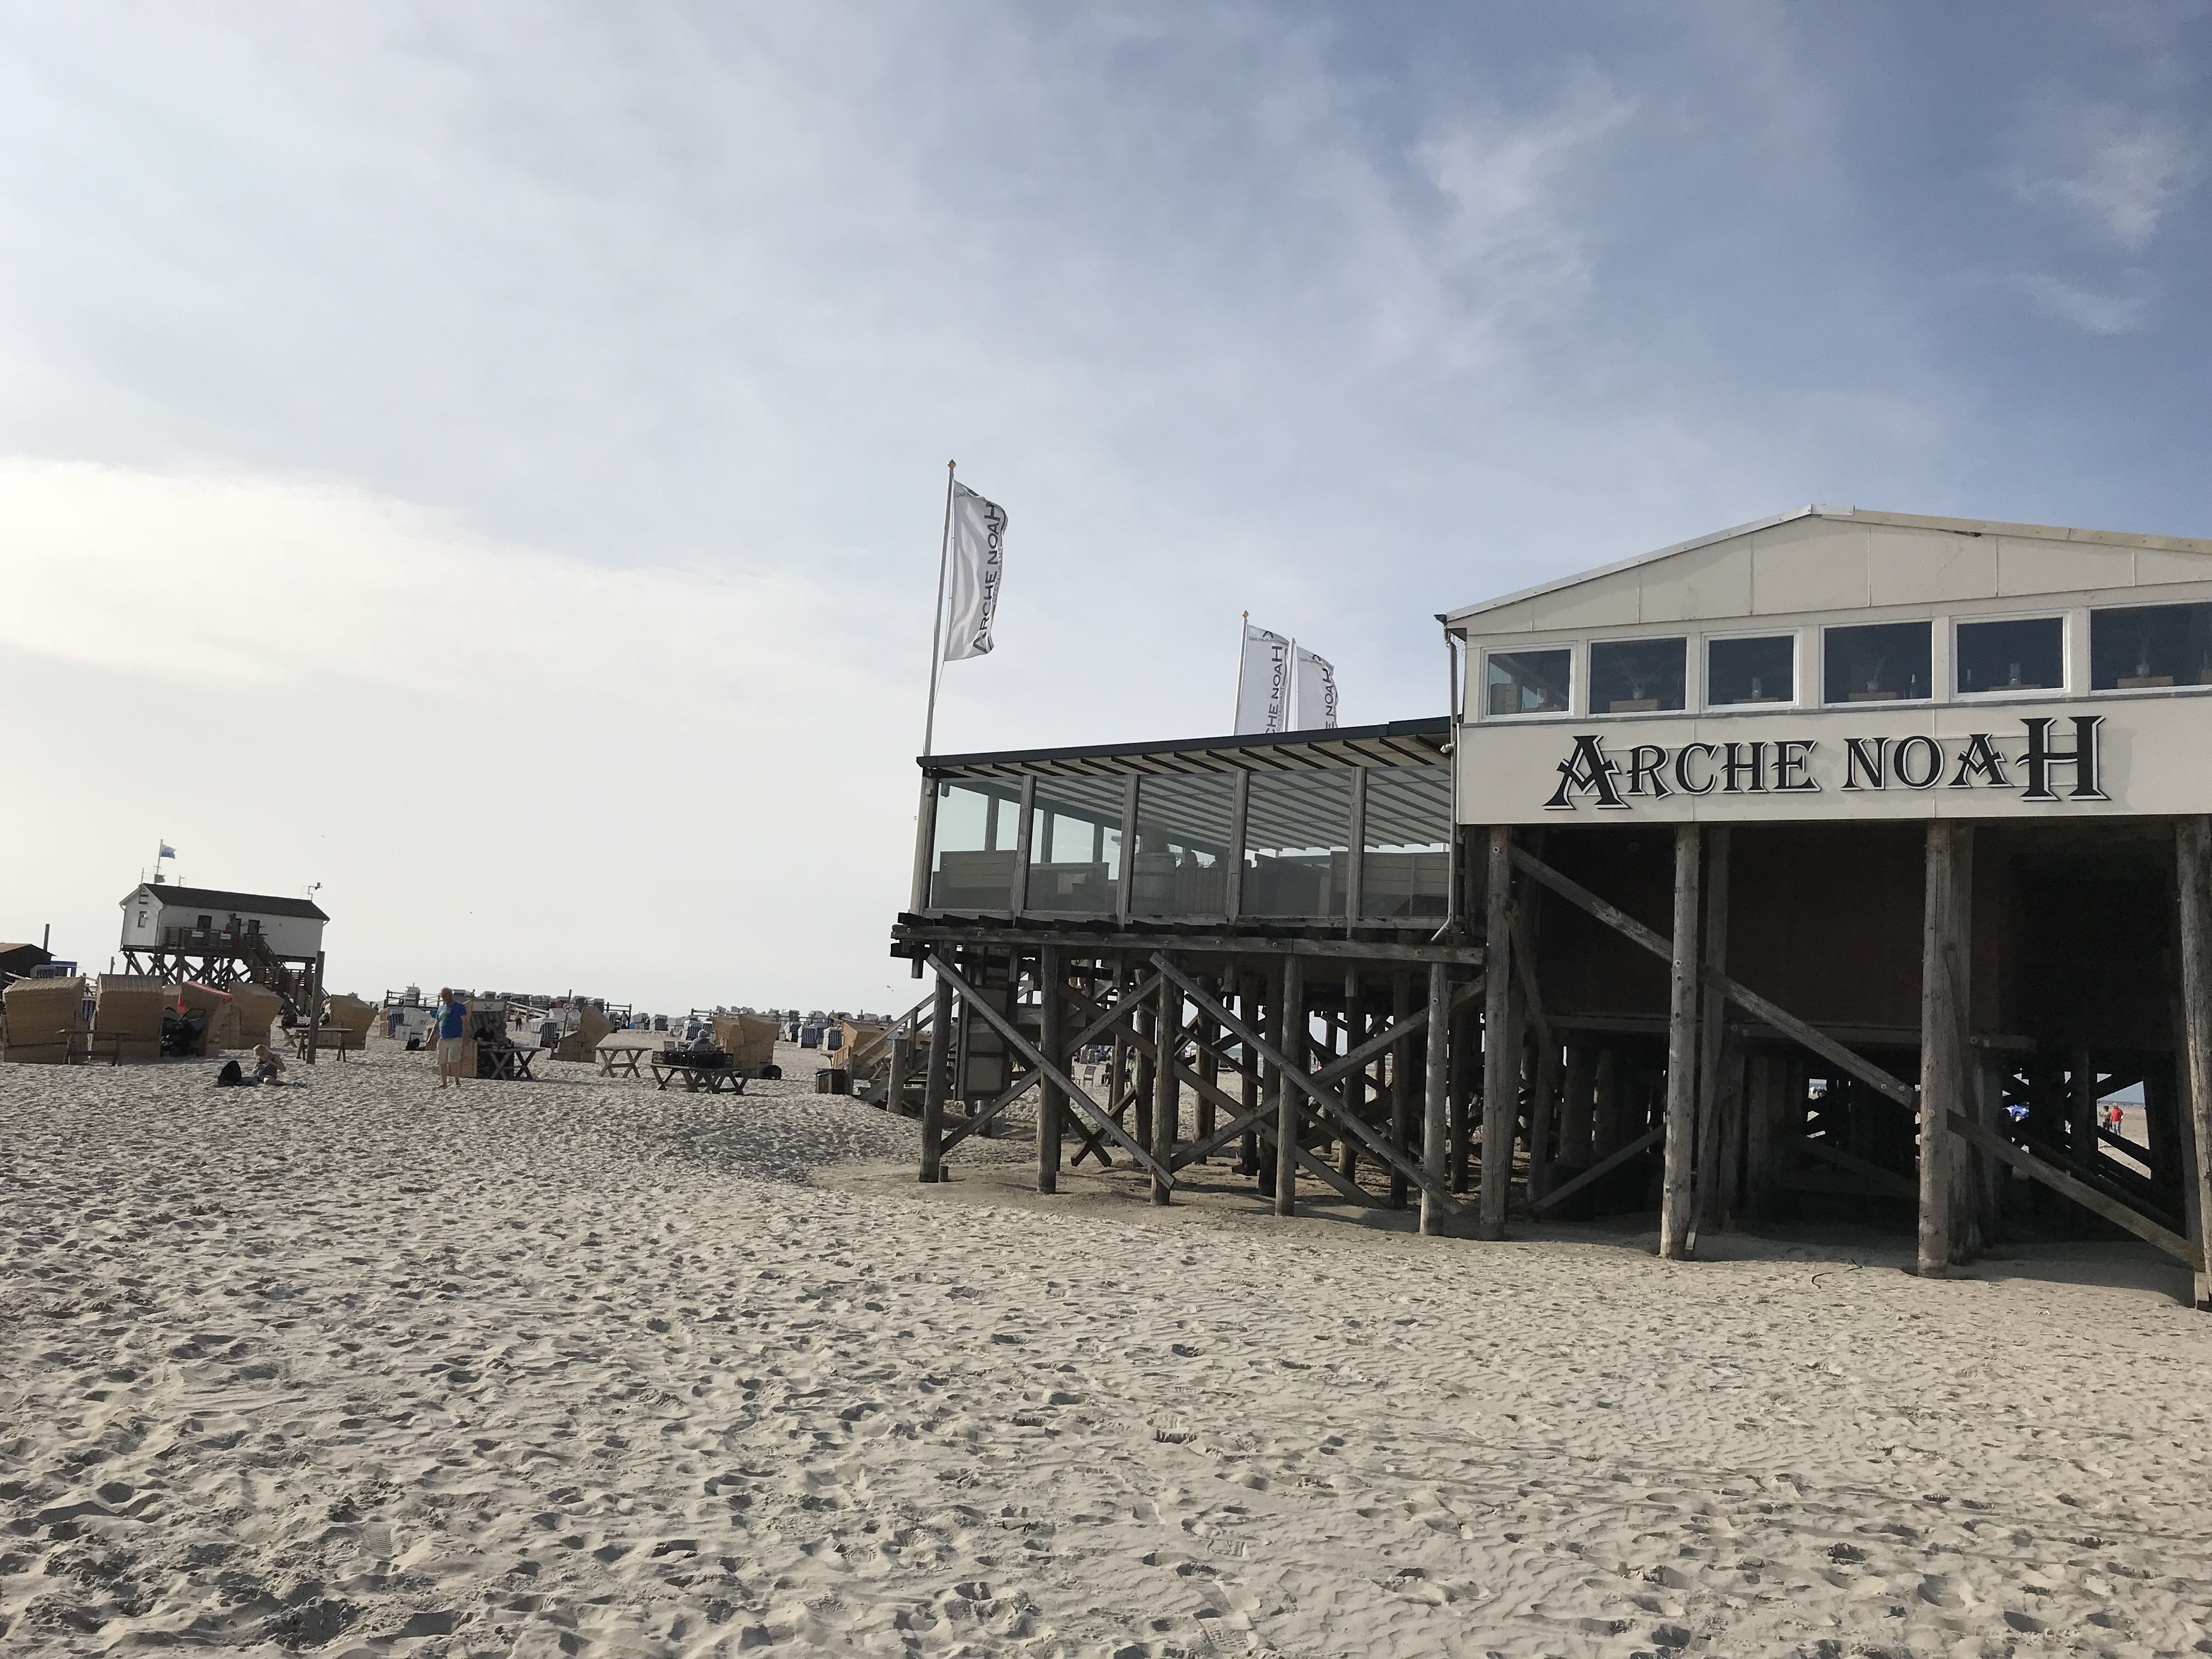 I Had A Fabulous Beach Day At St Peter Ording Beach Followed By A Glass Of White Wine At Arche Noah Beach Bar With Stunning S Beach Bars Beach Day